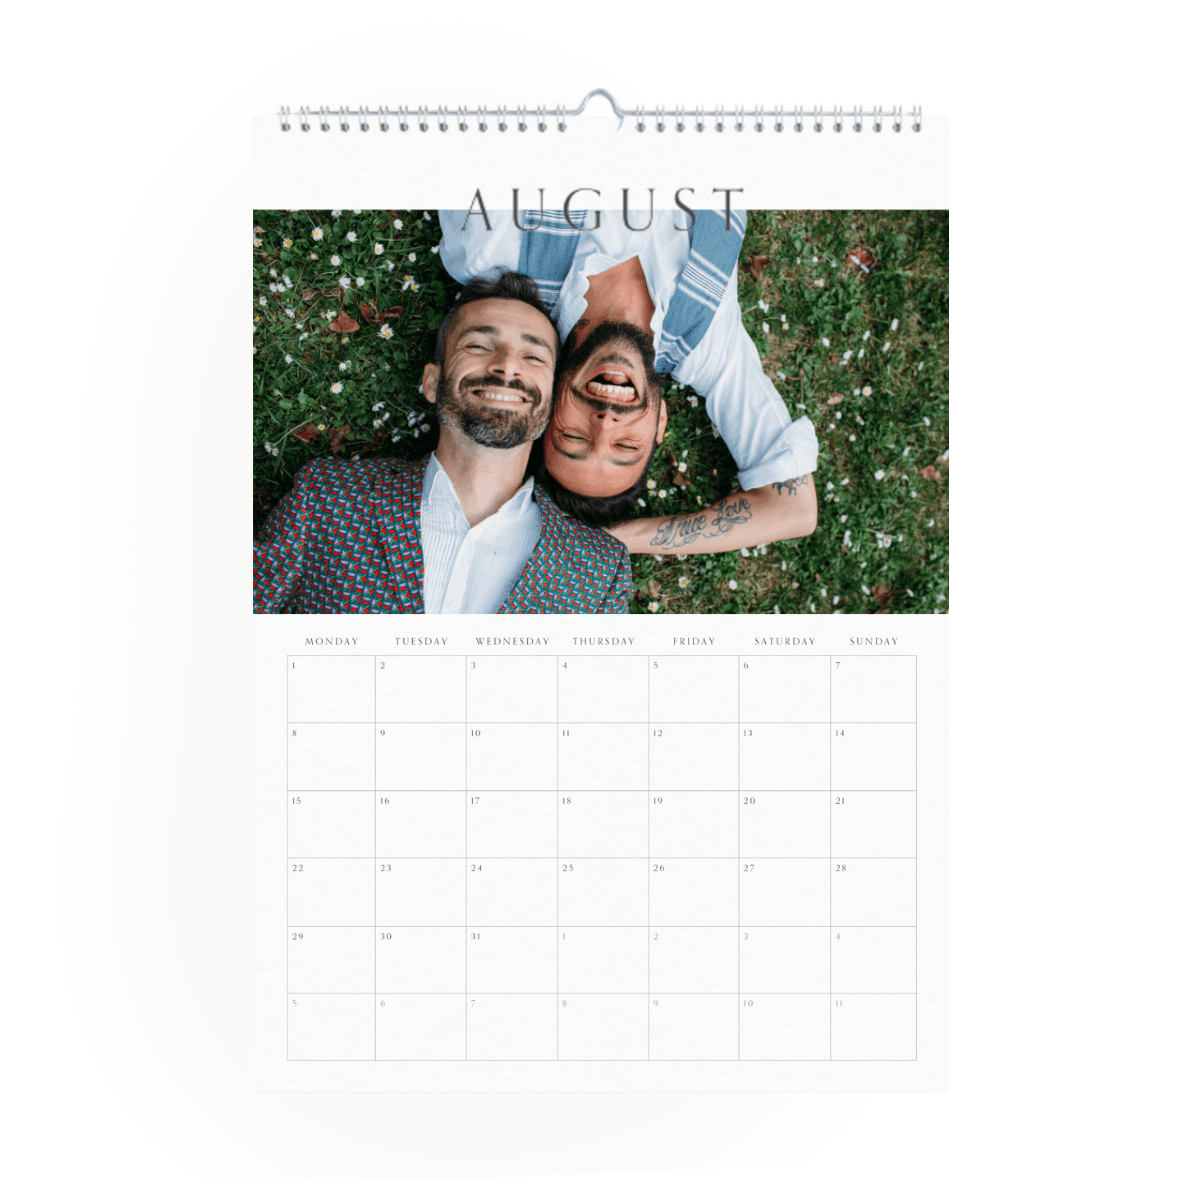 Https%3a%2f%2fwww.papier.com%2fproduct image%2f89413%2f76%2f2020 photo calendar 22424 august 1570713861.png?ixlib=rb 1.1